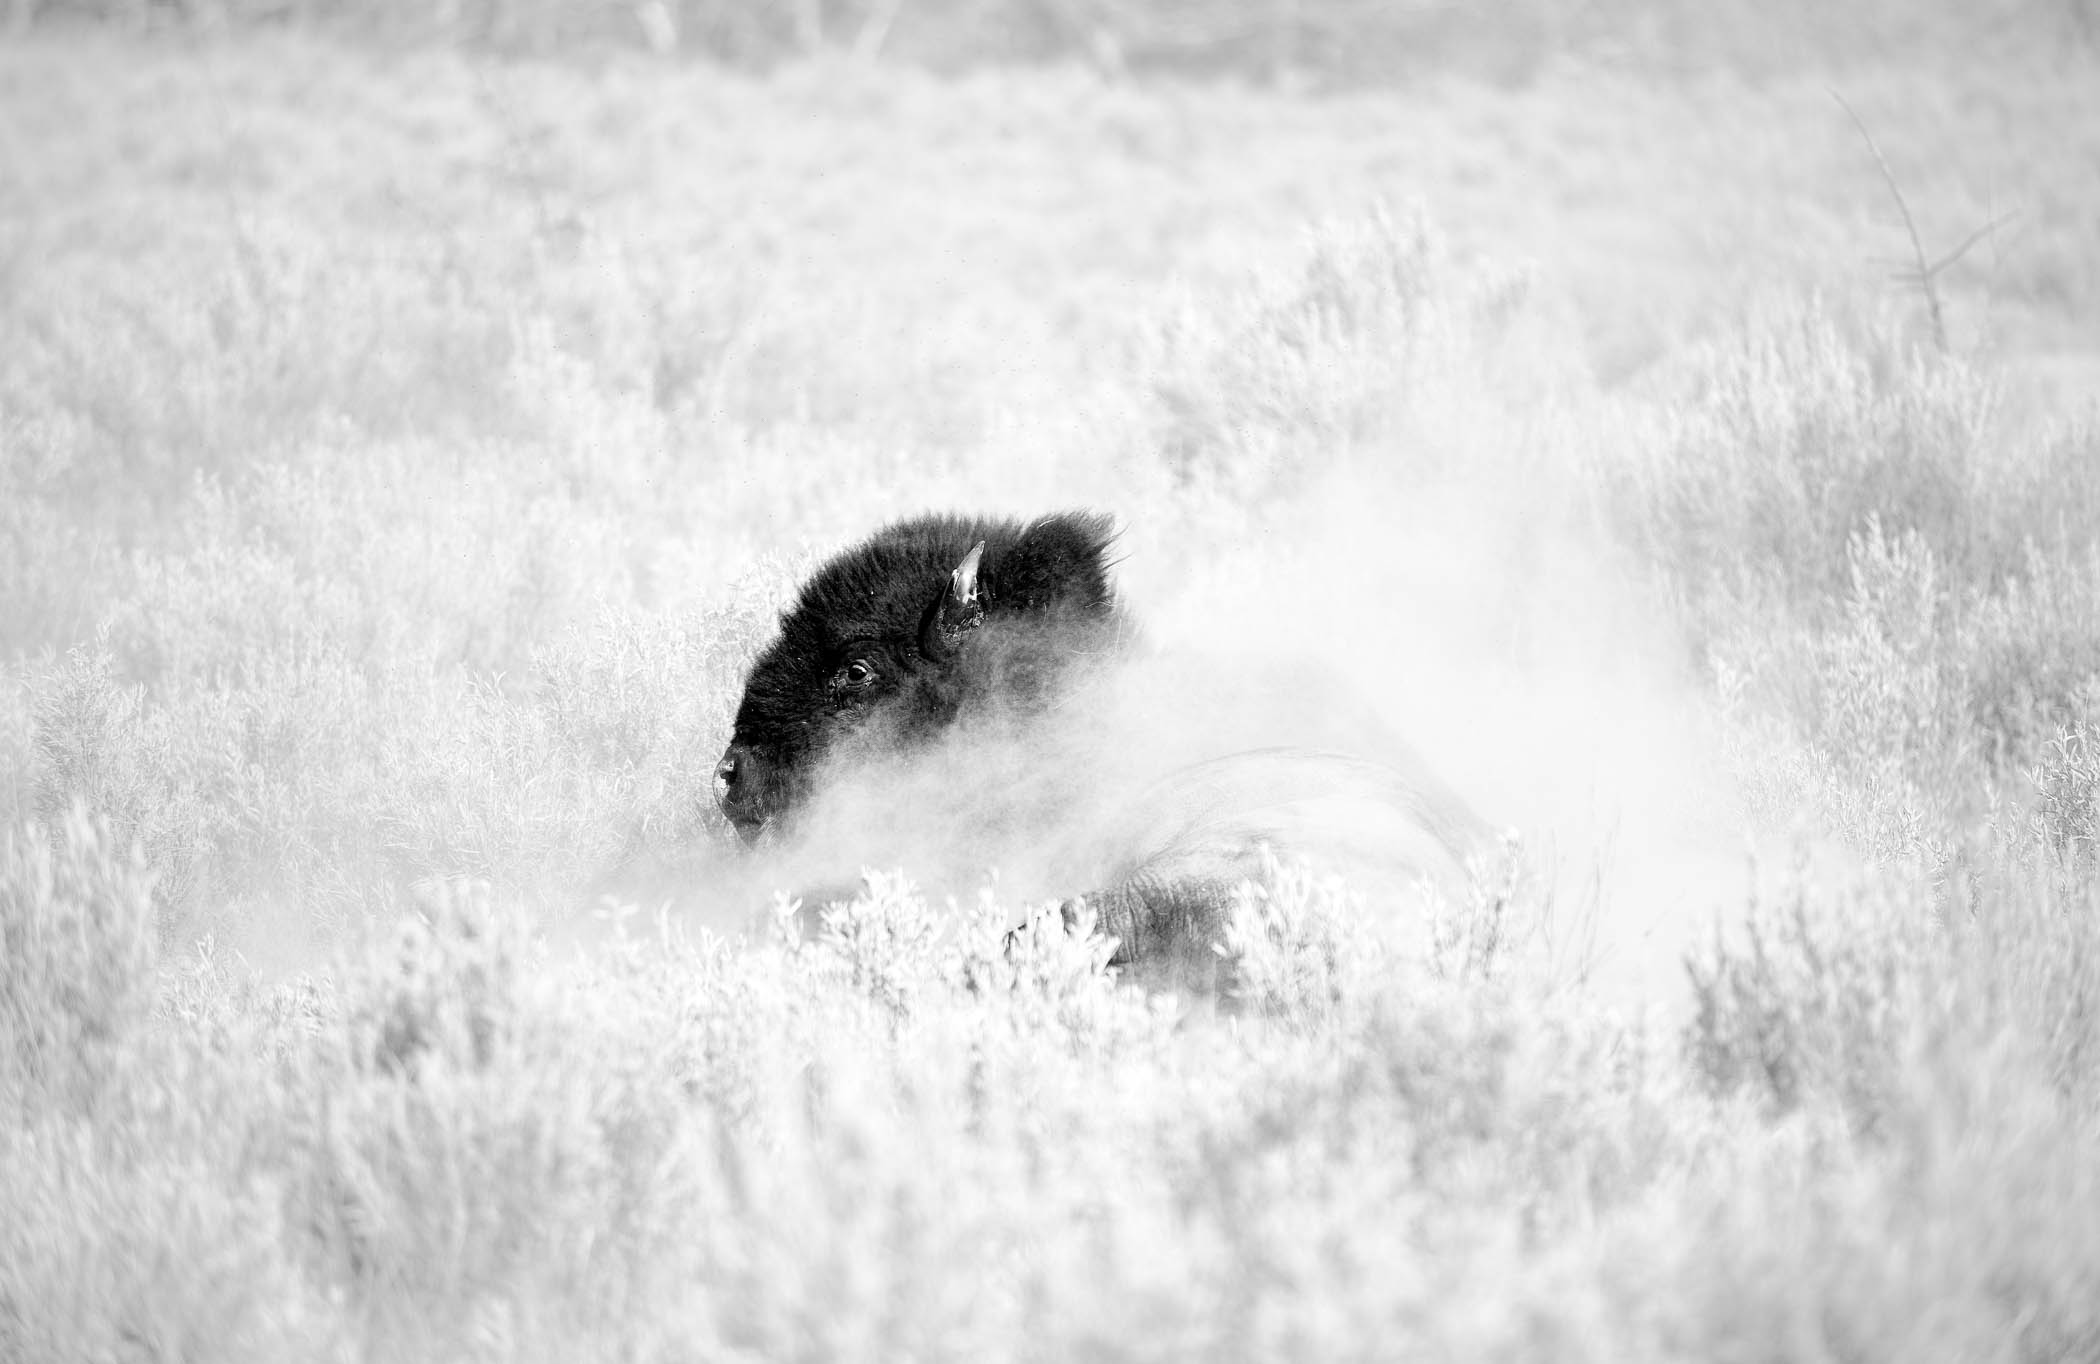 Bison Rolling in Dirt